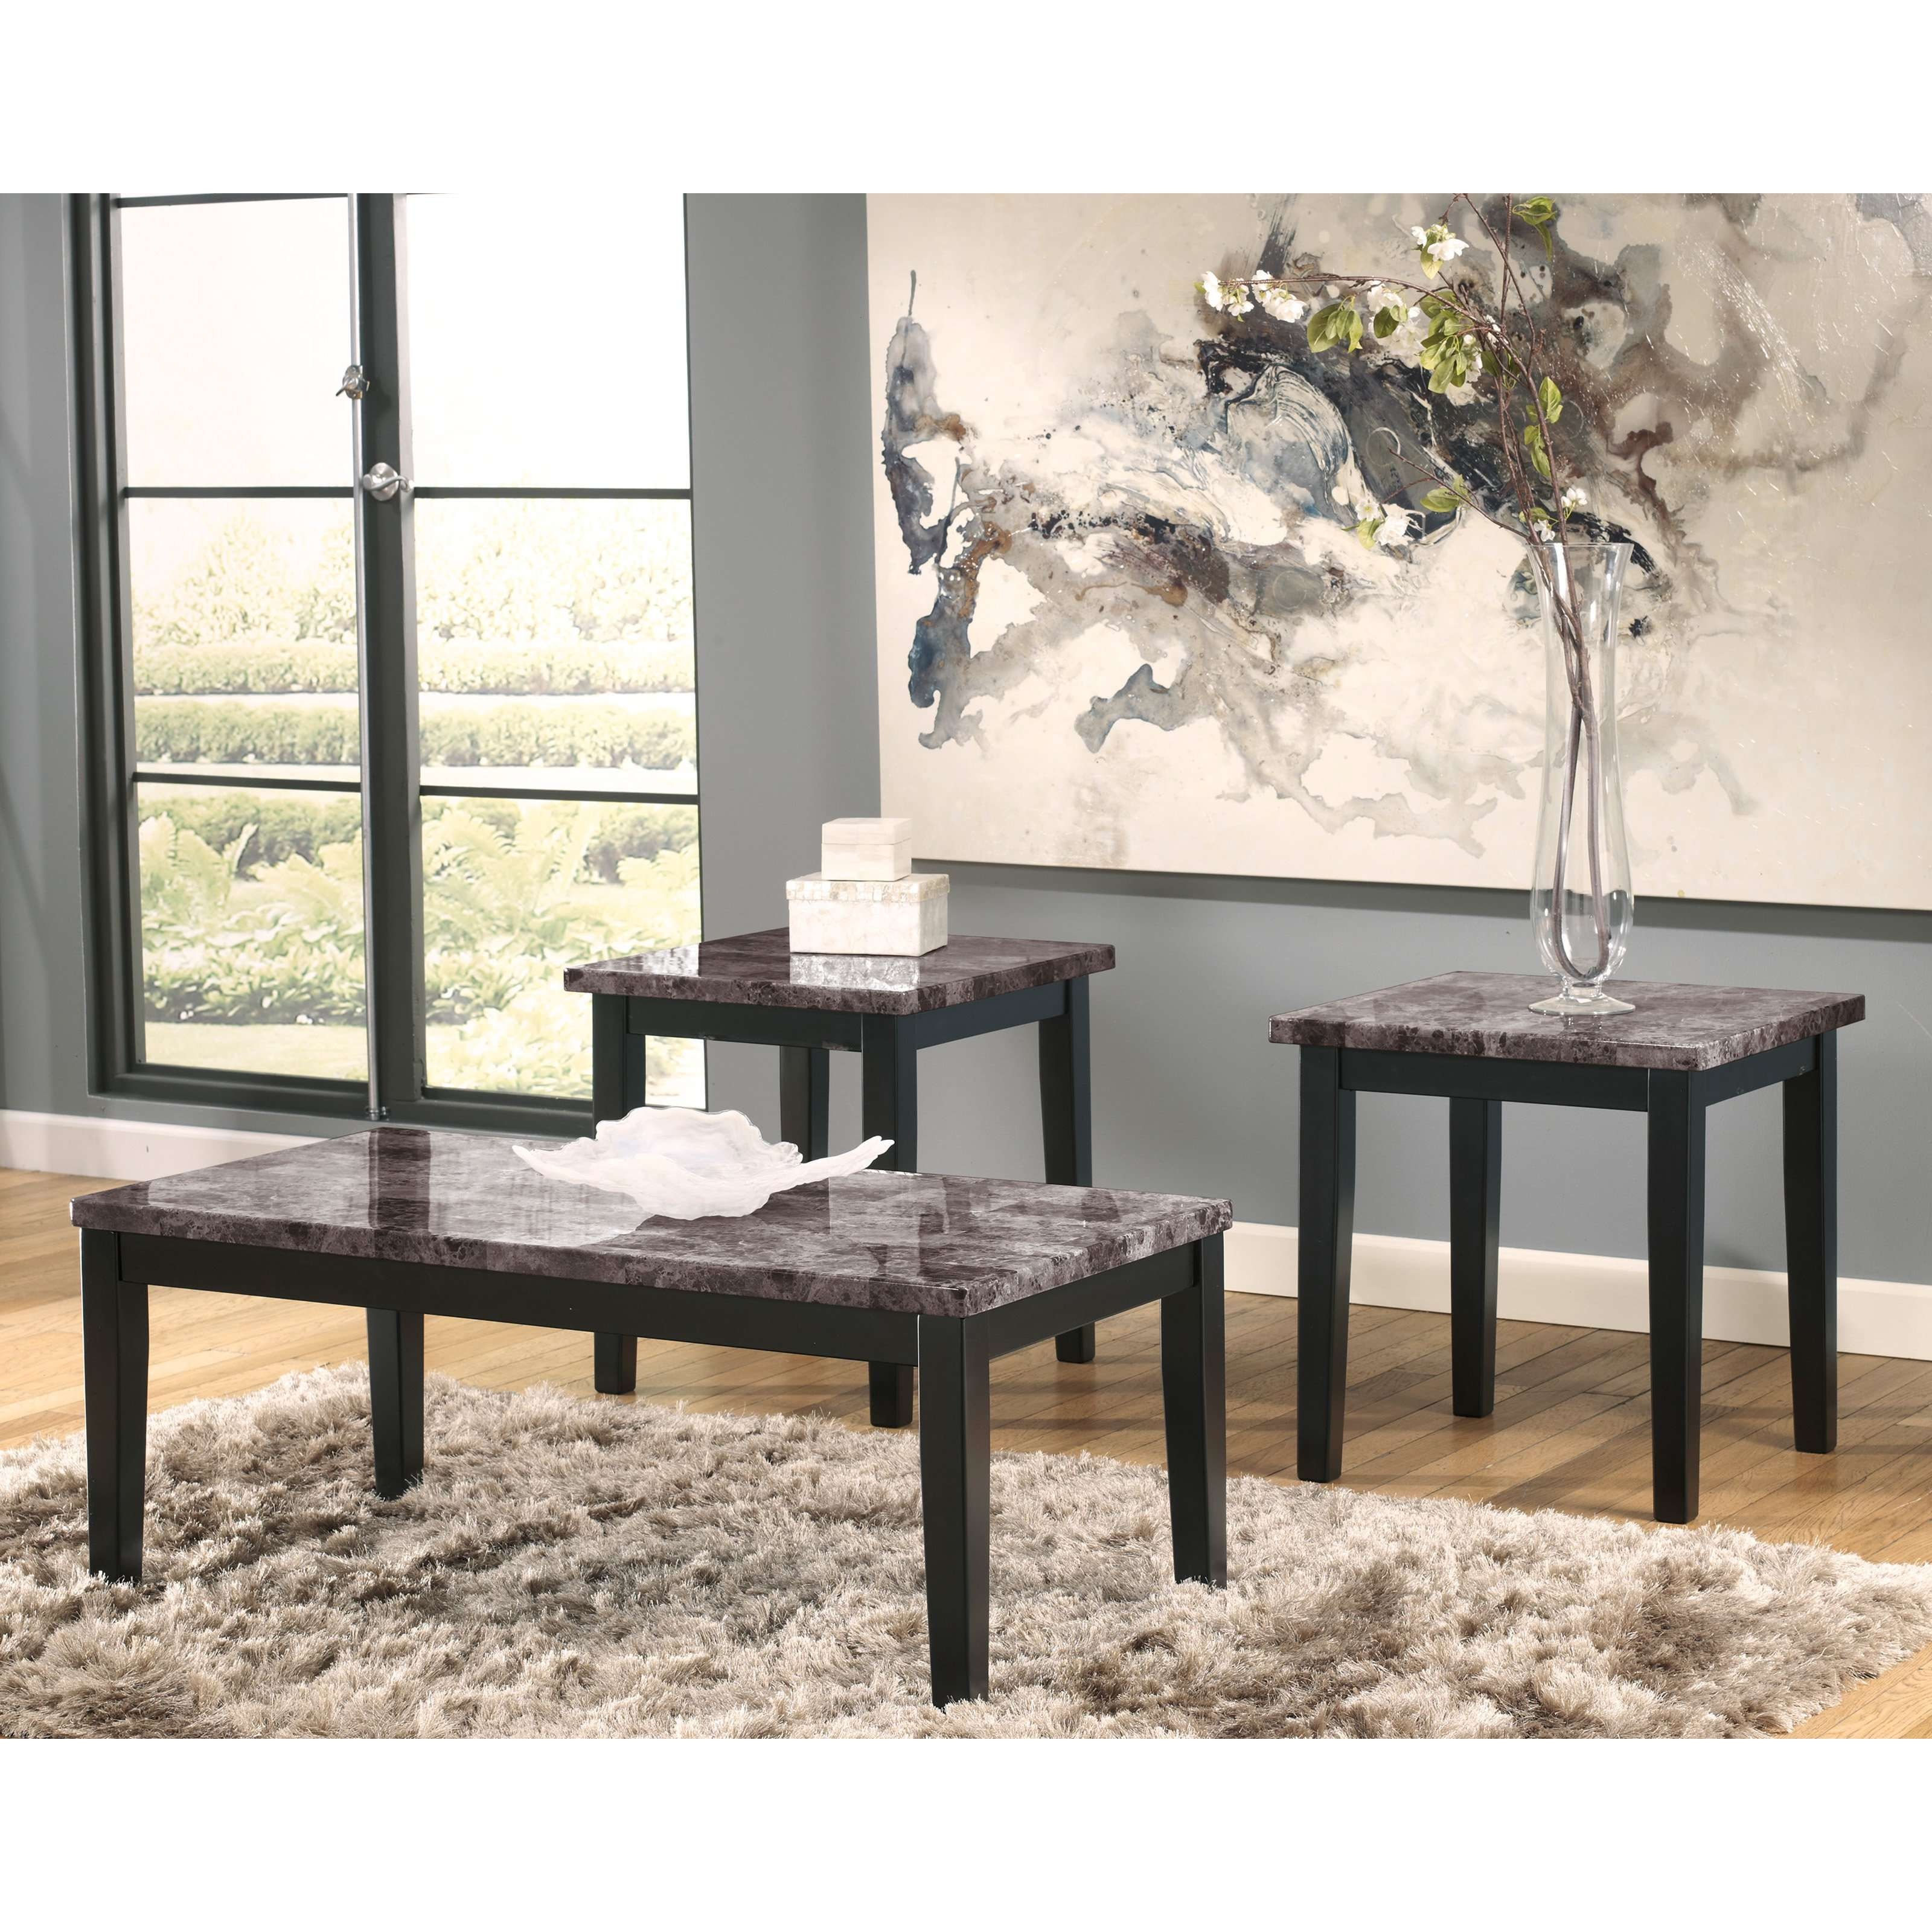 Coffee Table : Amazing Coffee Table Ashley Ashley Furniture Coffee Regarding 2018 Grey Coffee Table Sets (View 4 of 20)